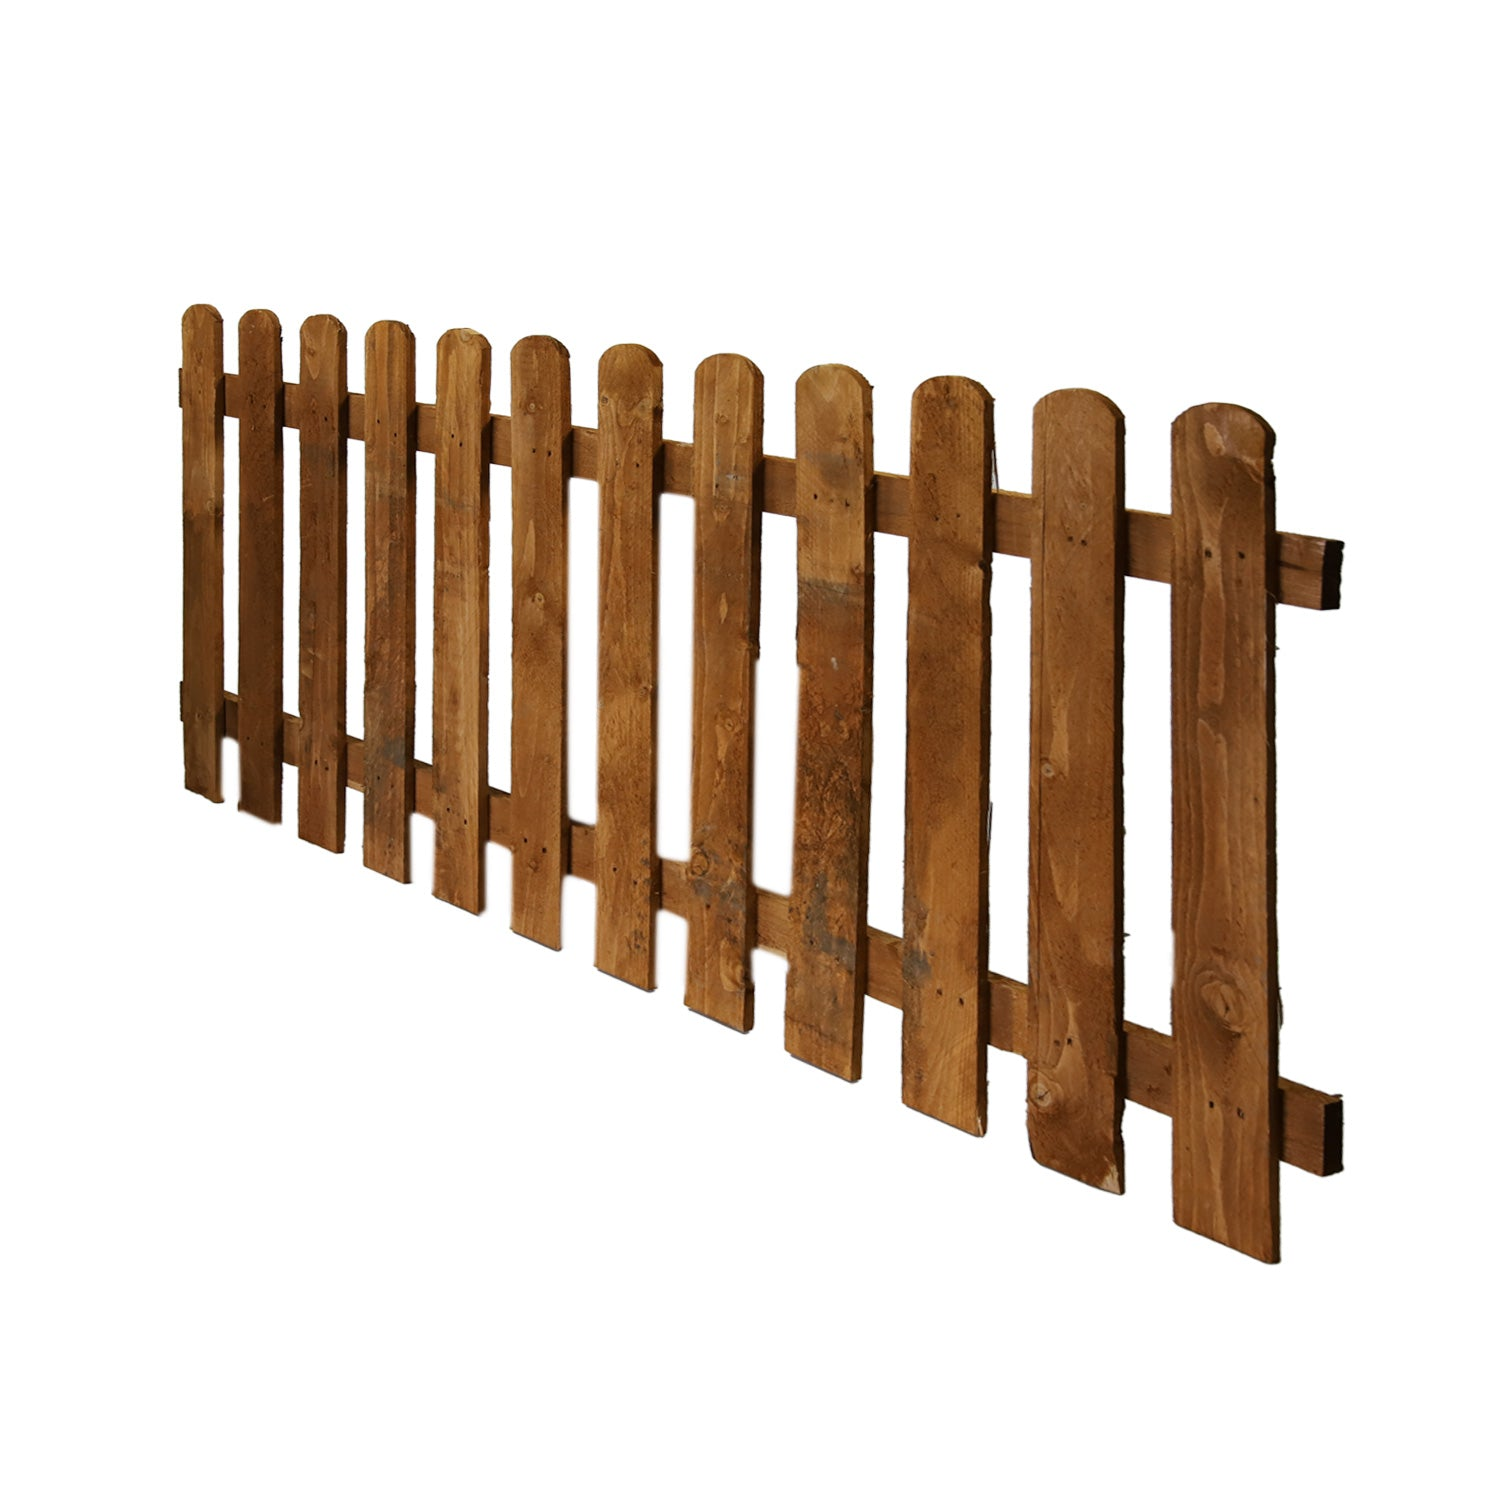 6' x 3' Wicket Fence Panel Round Top